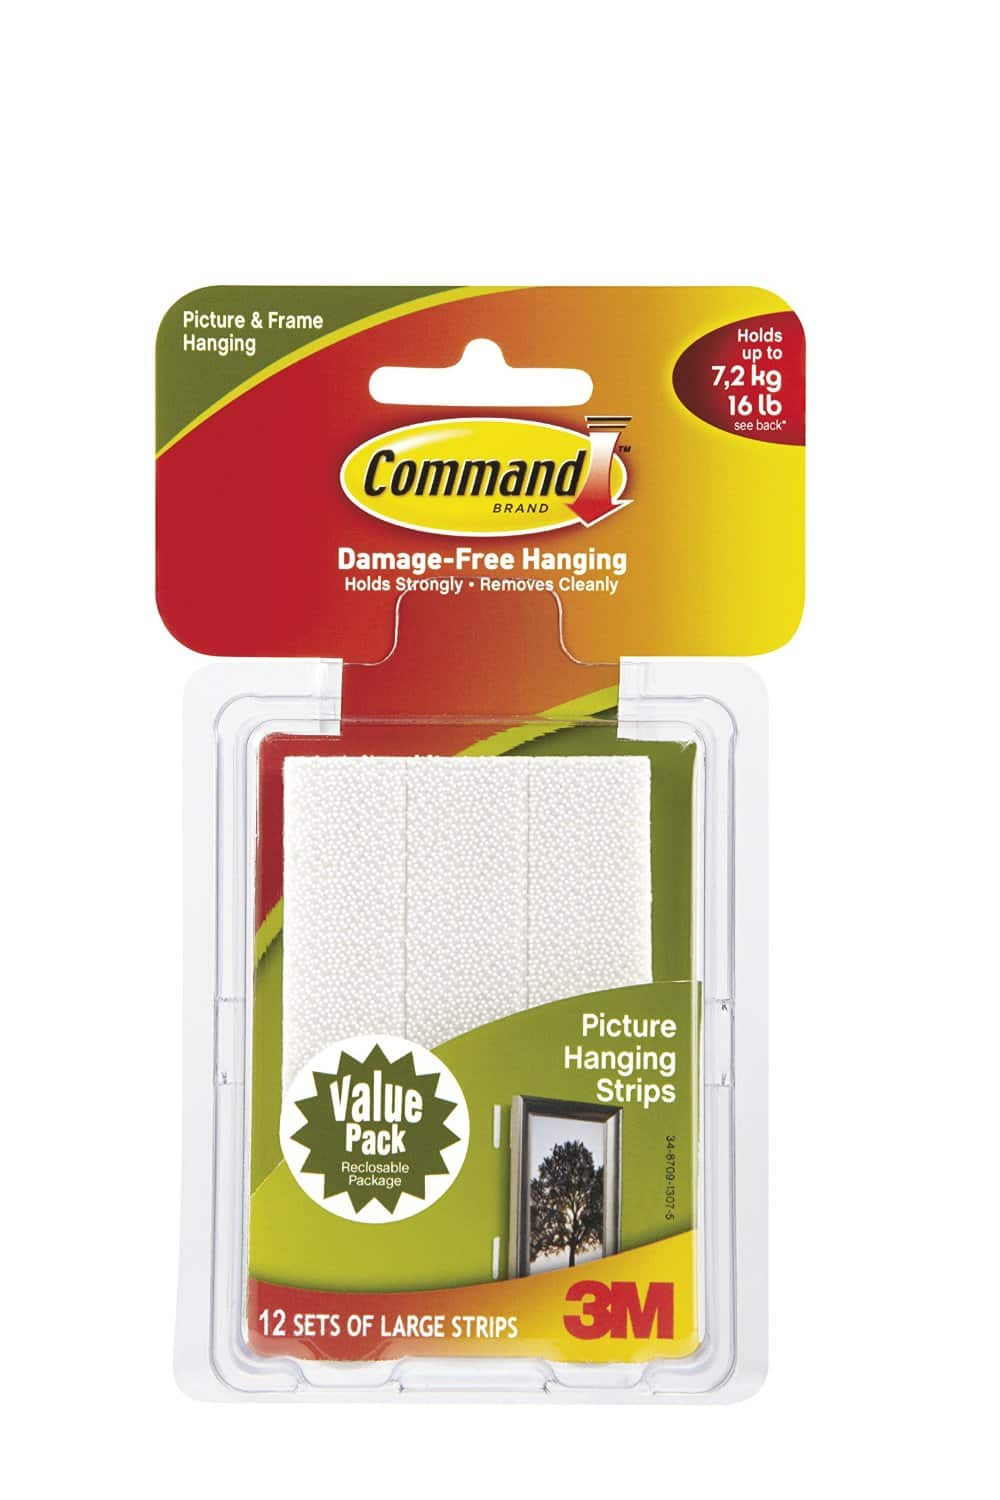 12-Sets of Command Large Picture Hanging Strips  $6.70 + Free Store Pickup